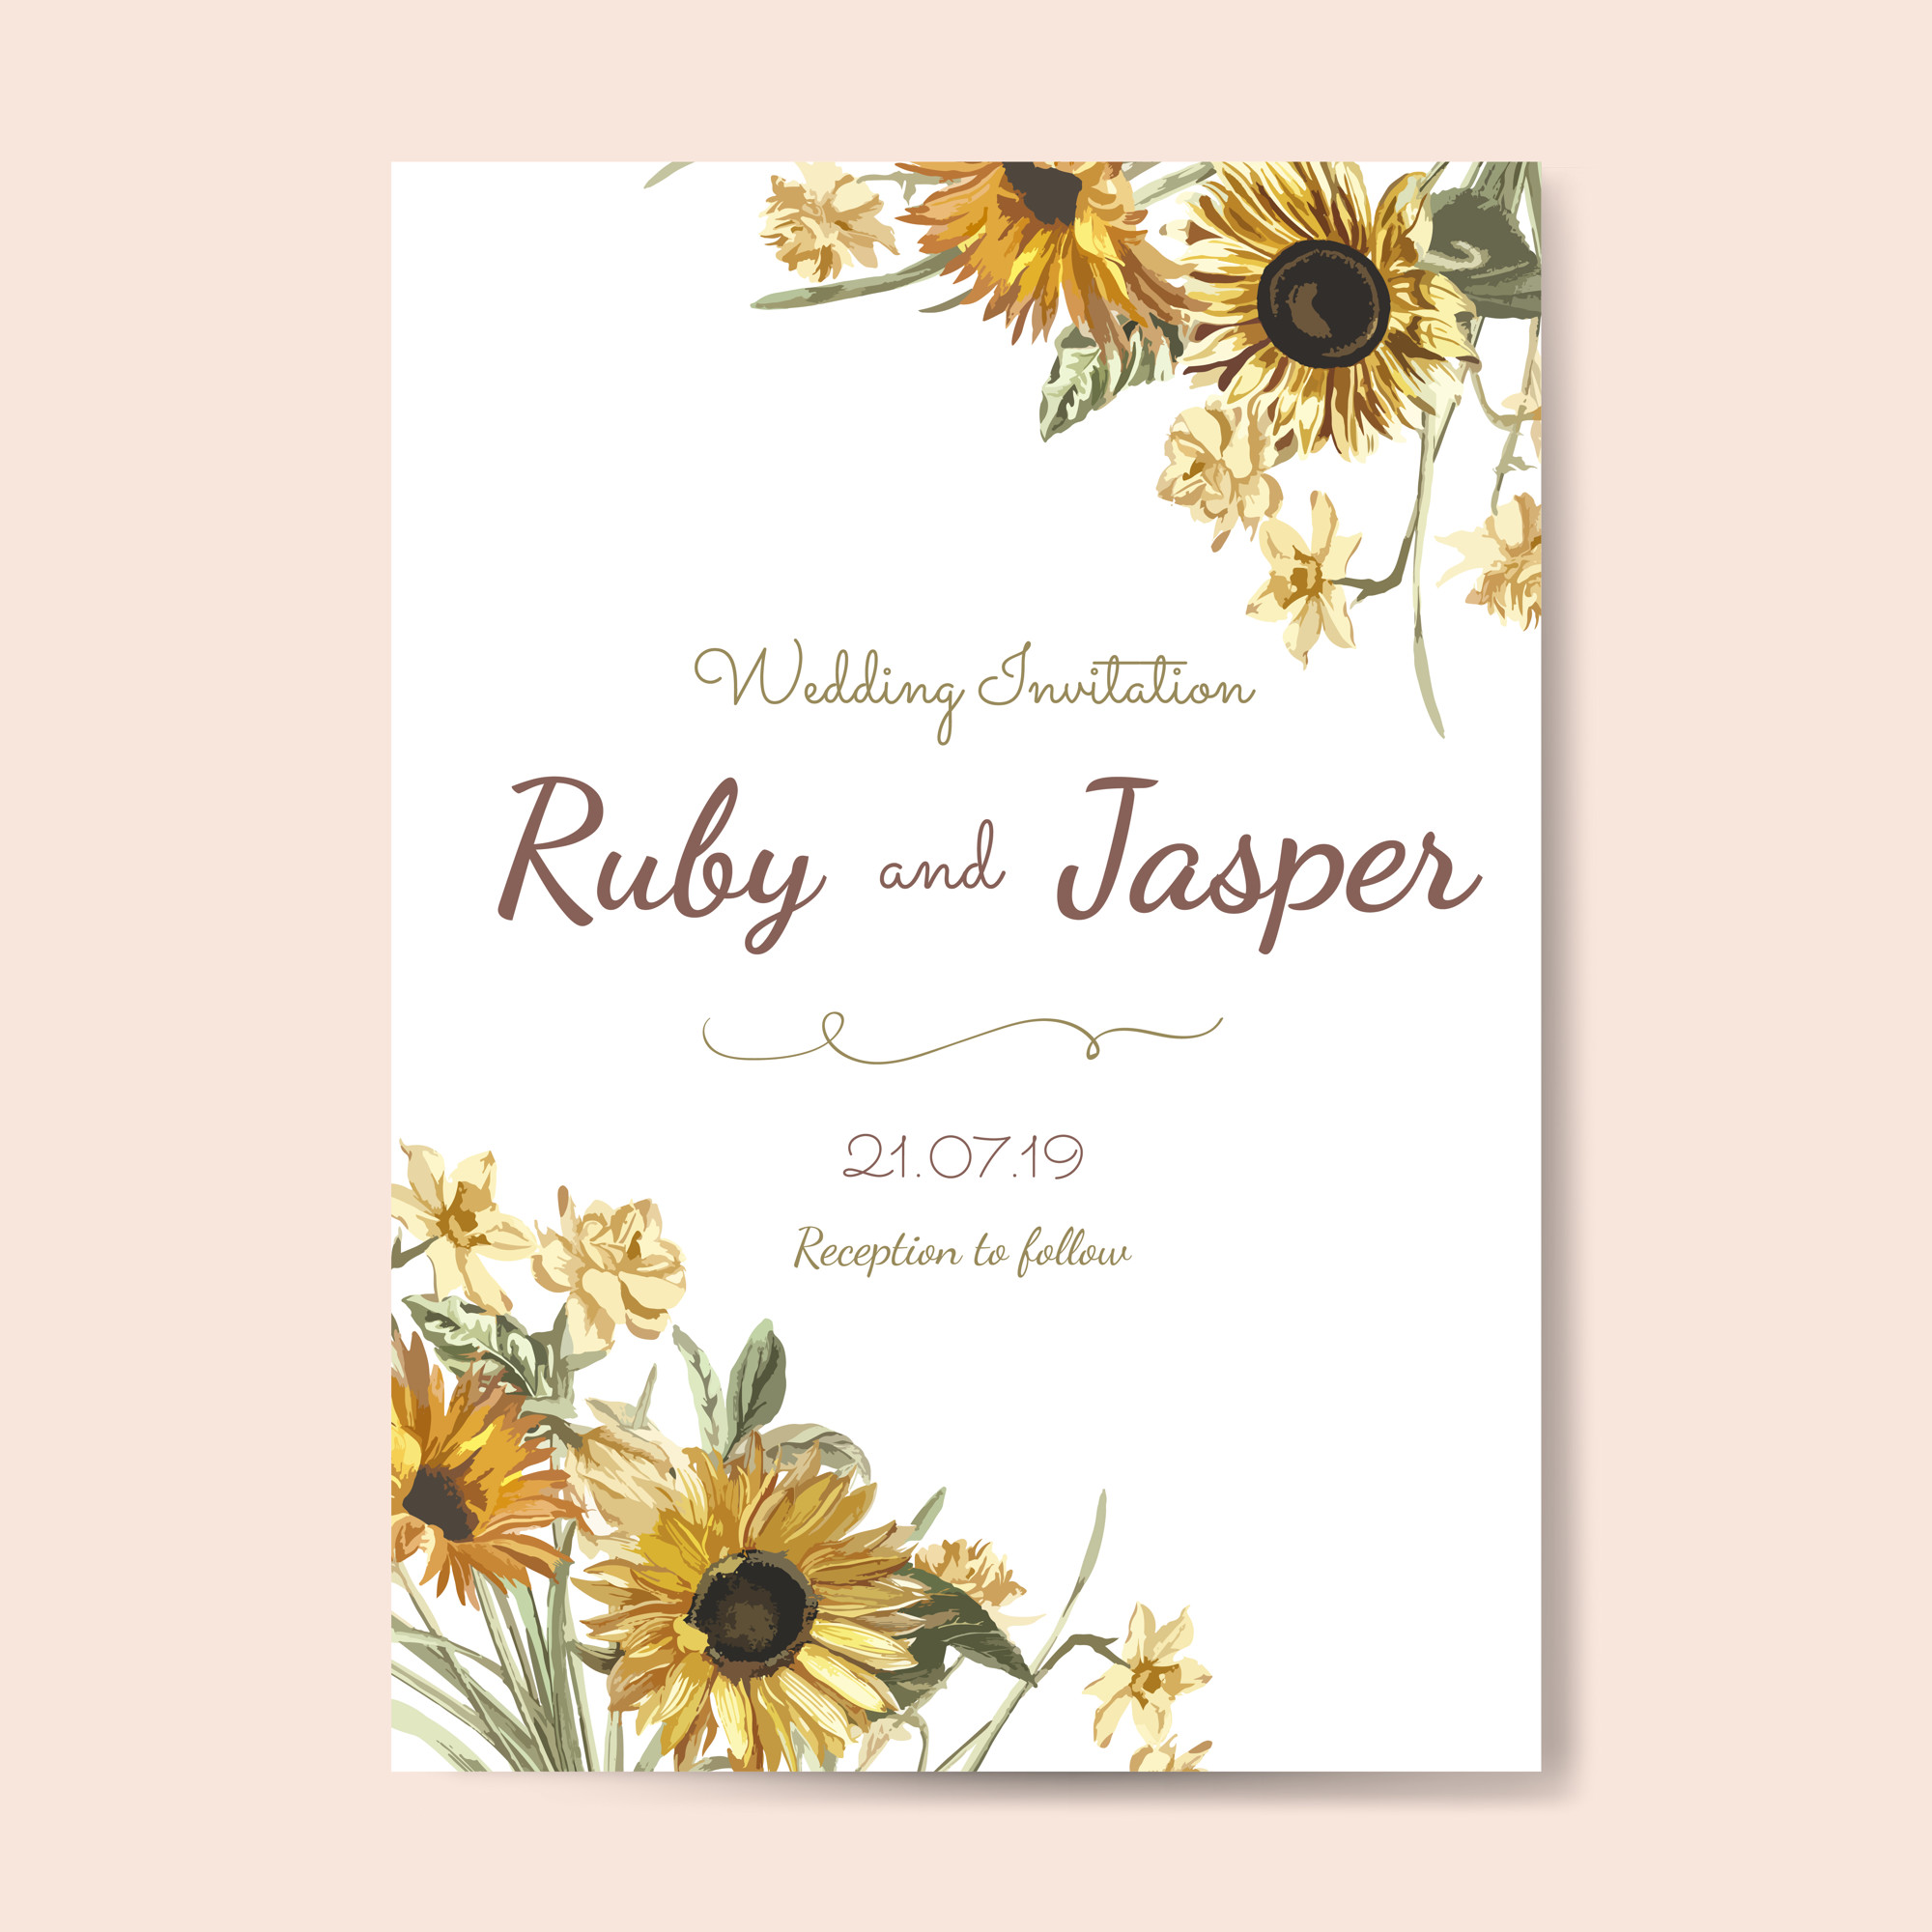 Wedding invitation card mockup vector